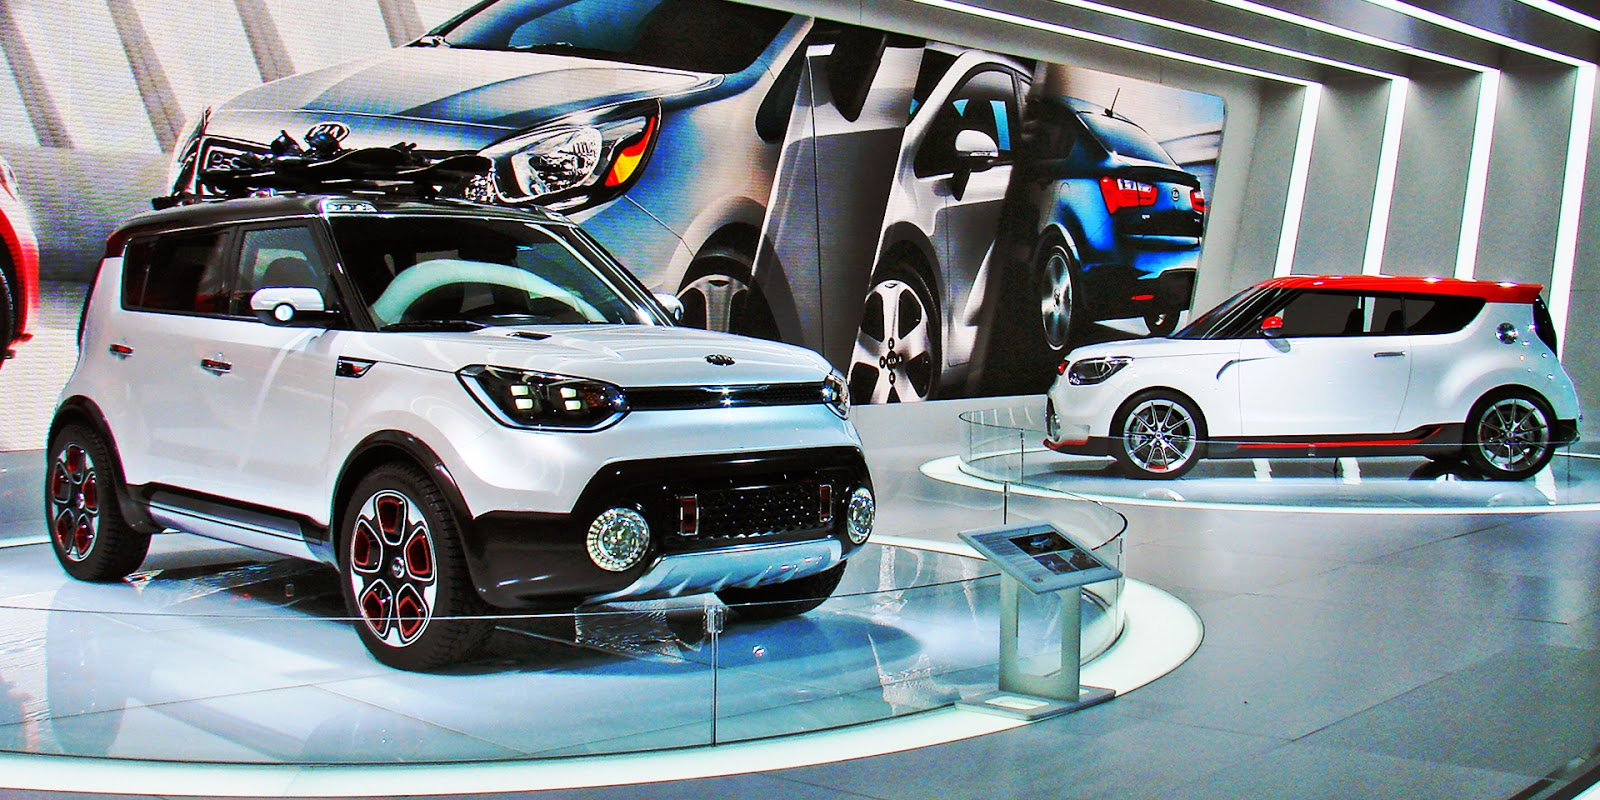 Kia Soul The Trail Ster And Track Concepts